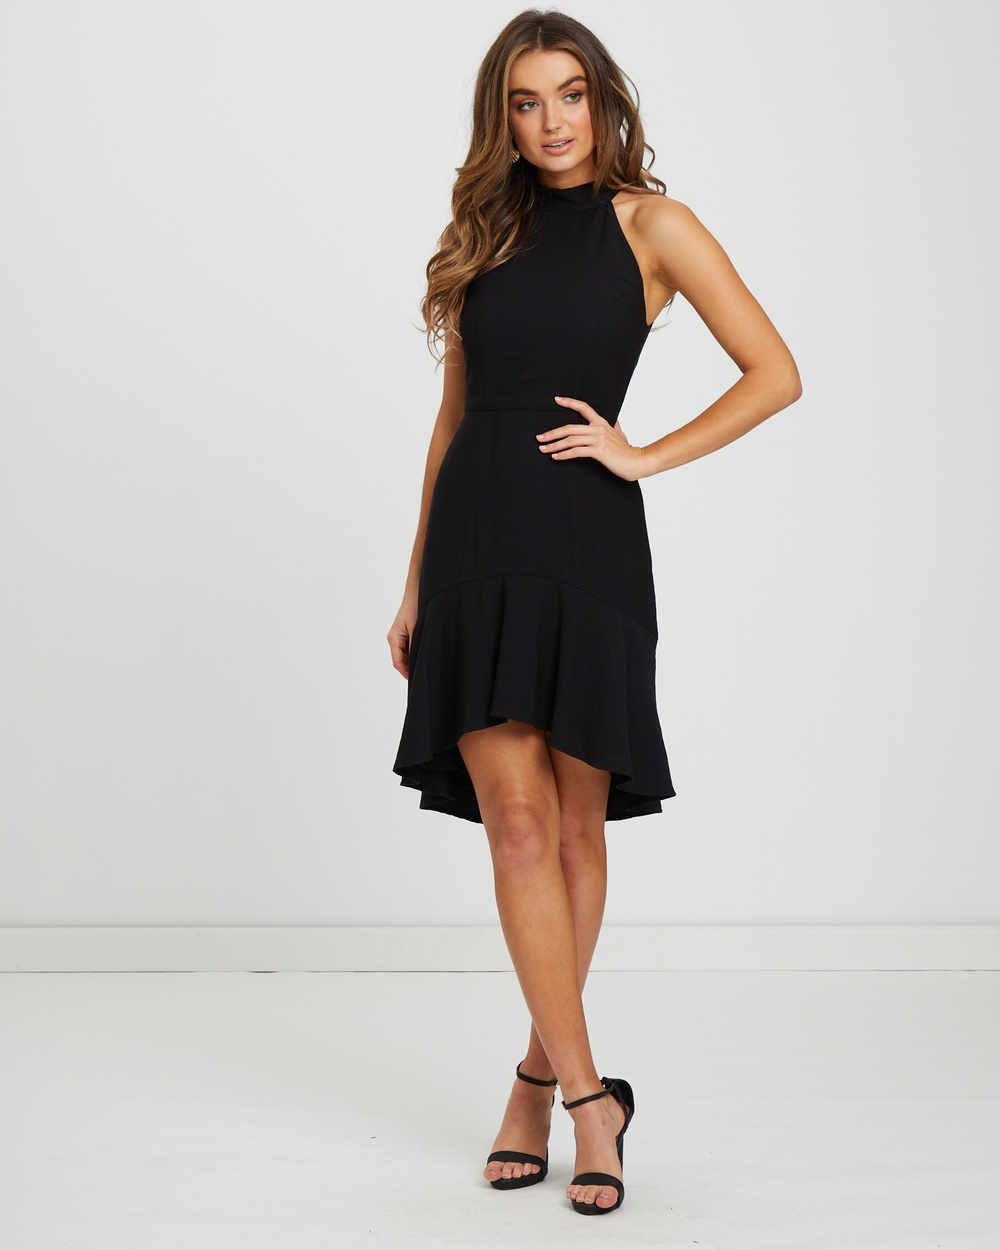 Photo of Tussah Black Lina Cocktail Dress - beautiful dress from Tussah online